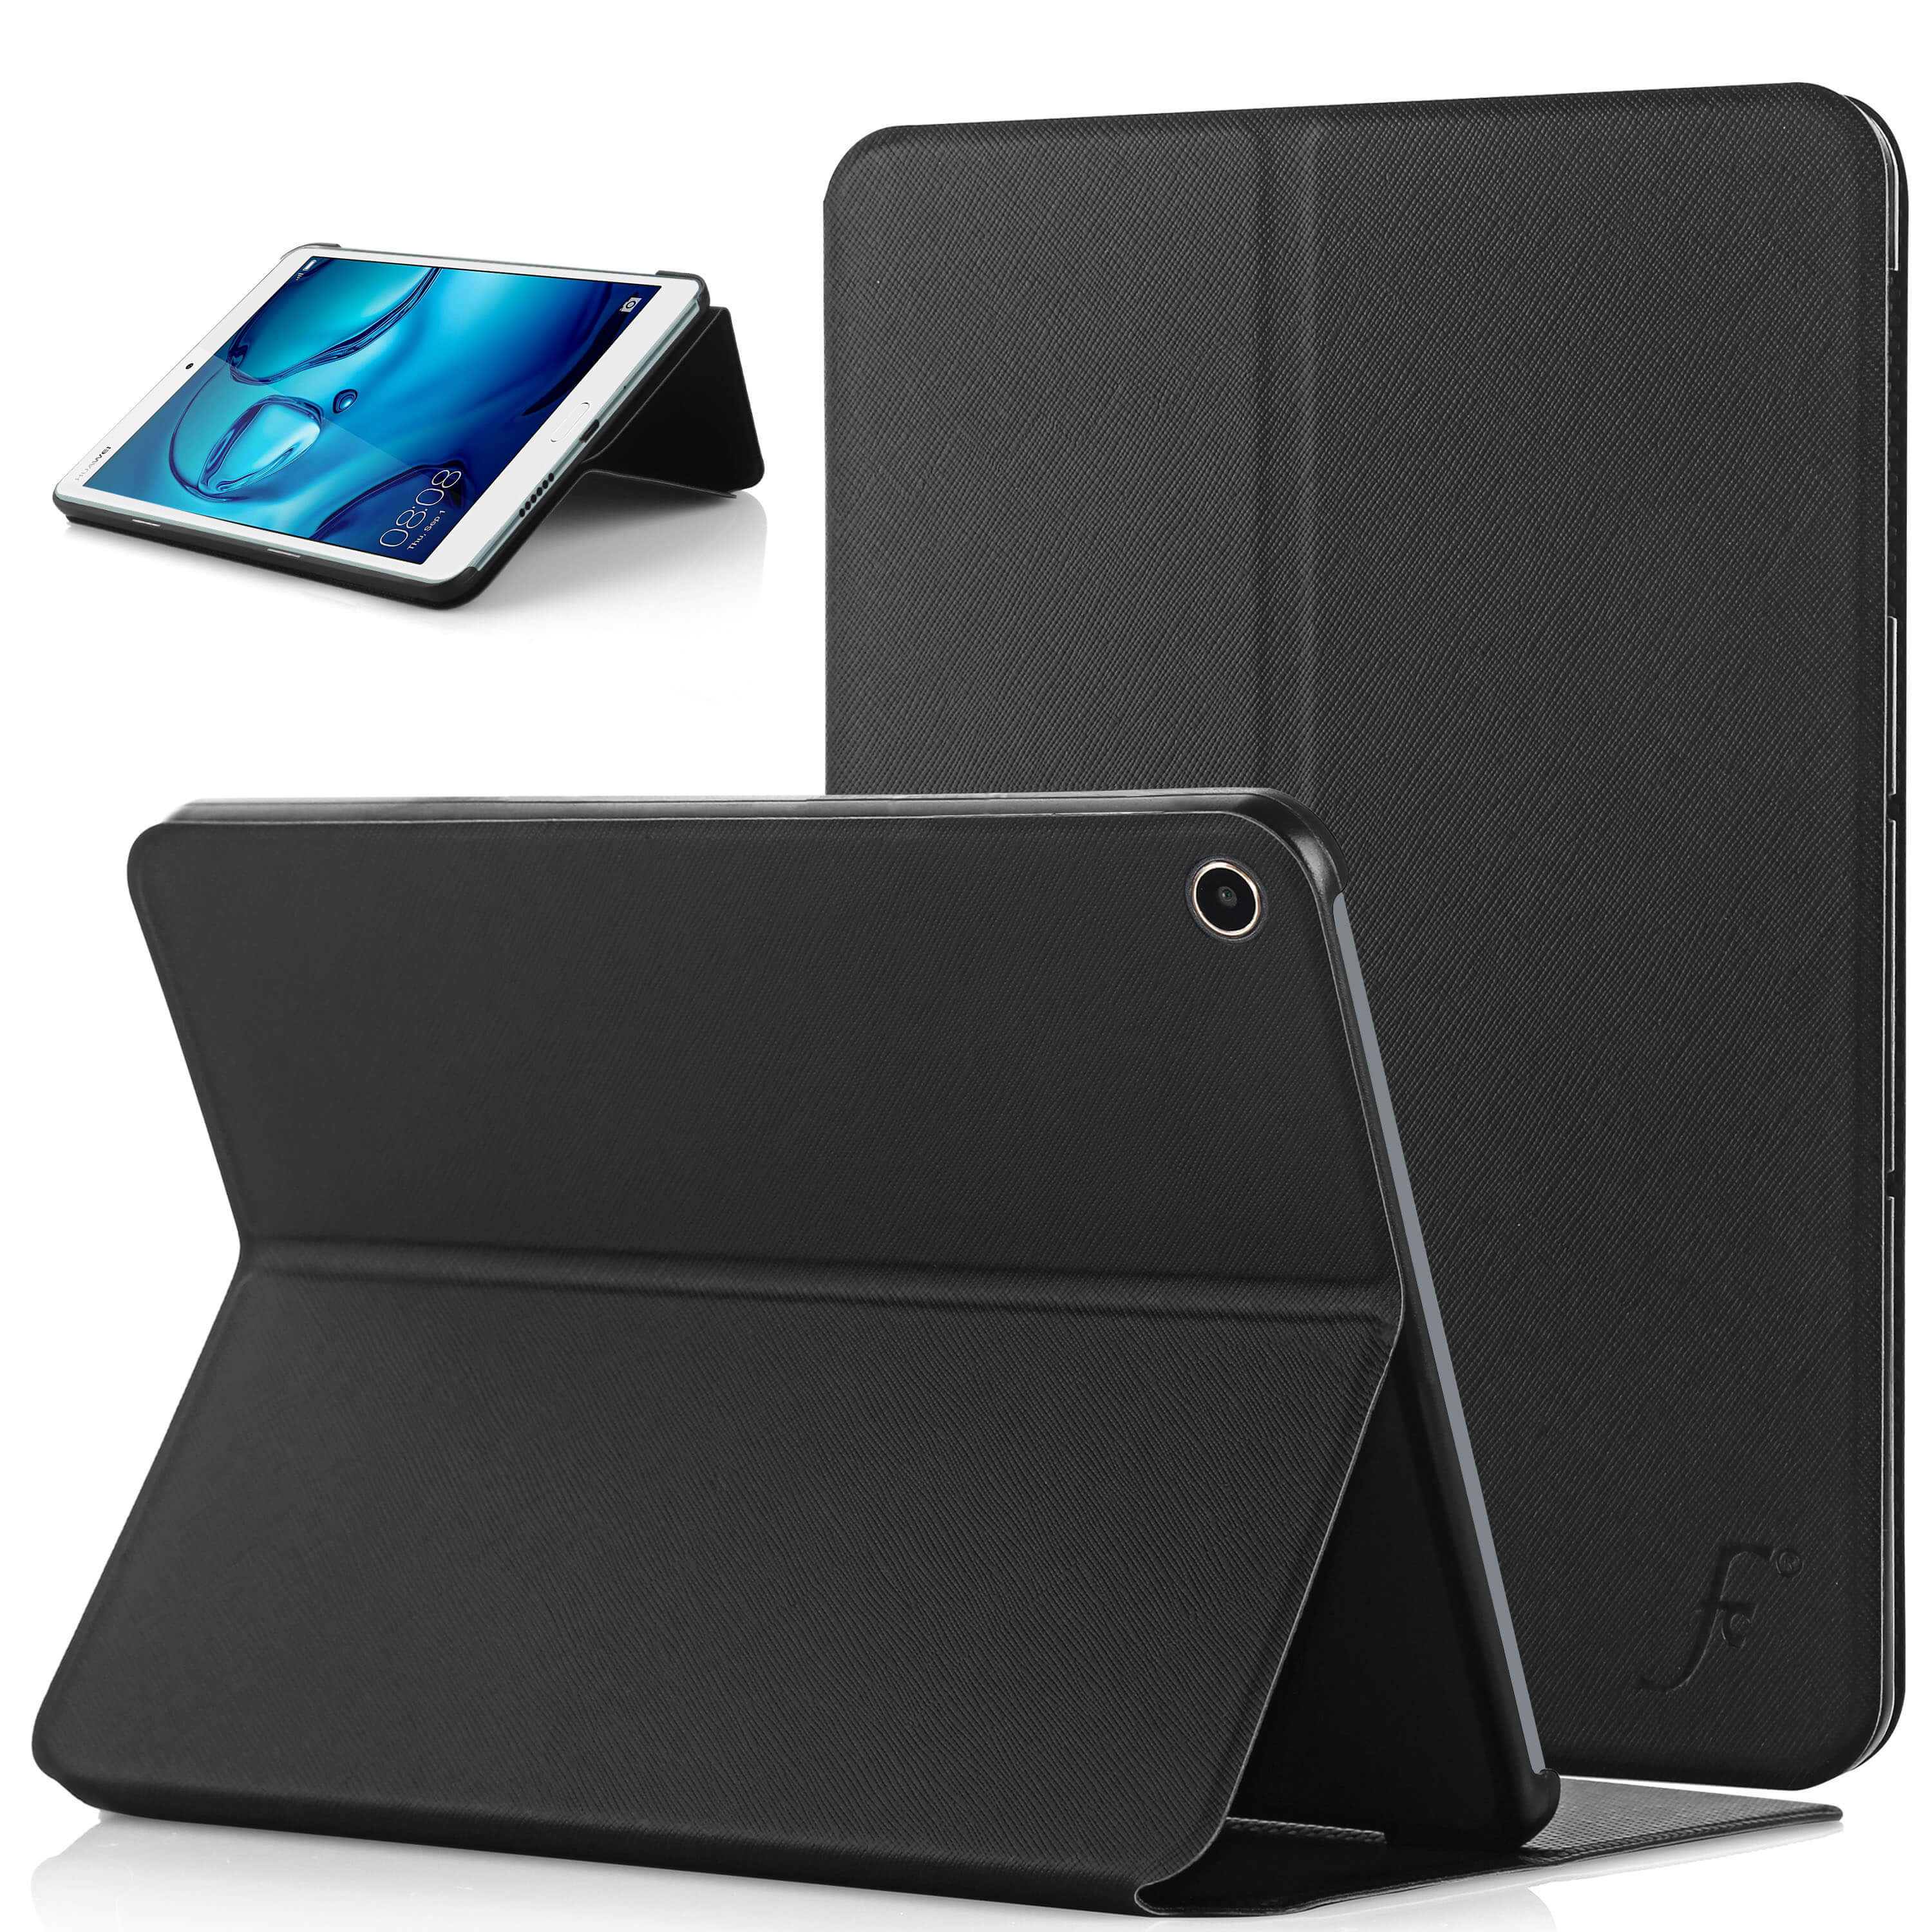 on sale 705ba 7f8f6 Forefront Cases® Huawei MediaPad M3 Lite 8 8-Inch Clam Shell Smart Case  Cover Stand (BLACK)